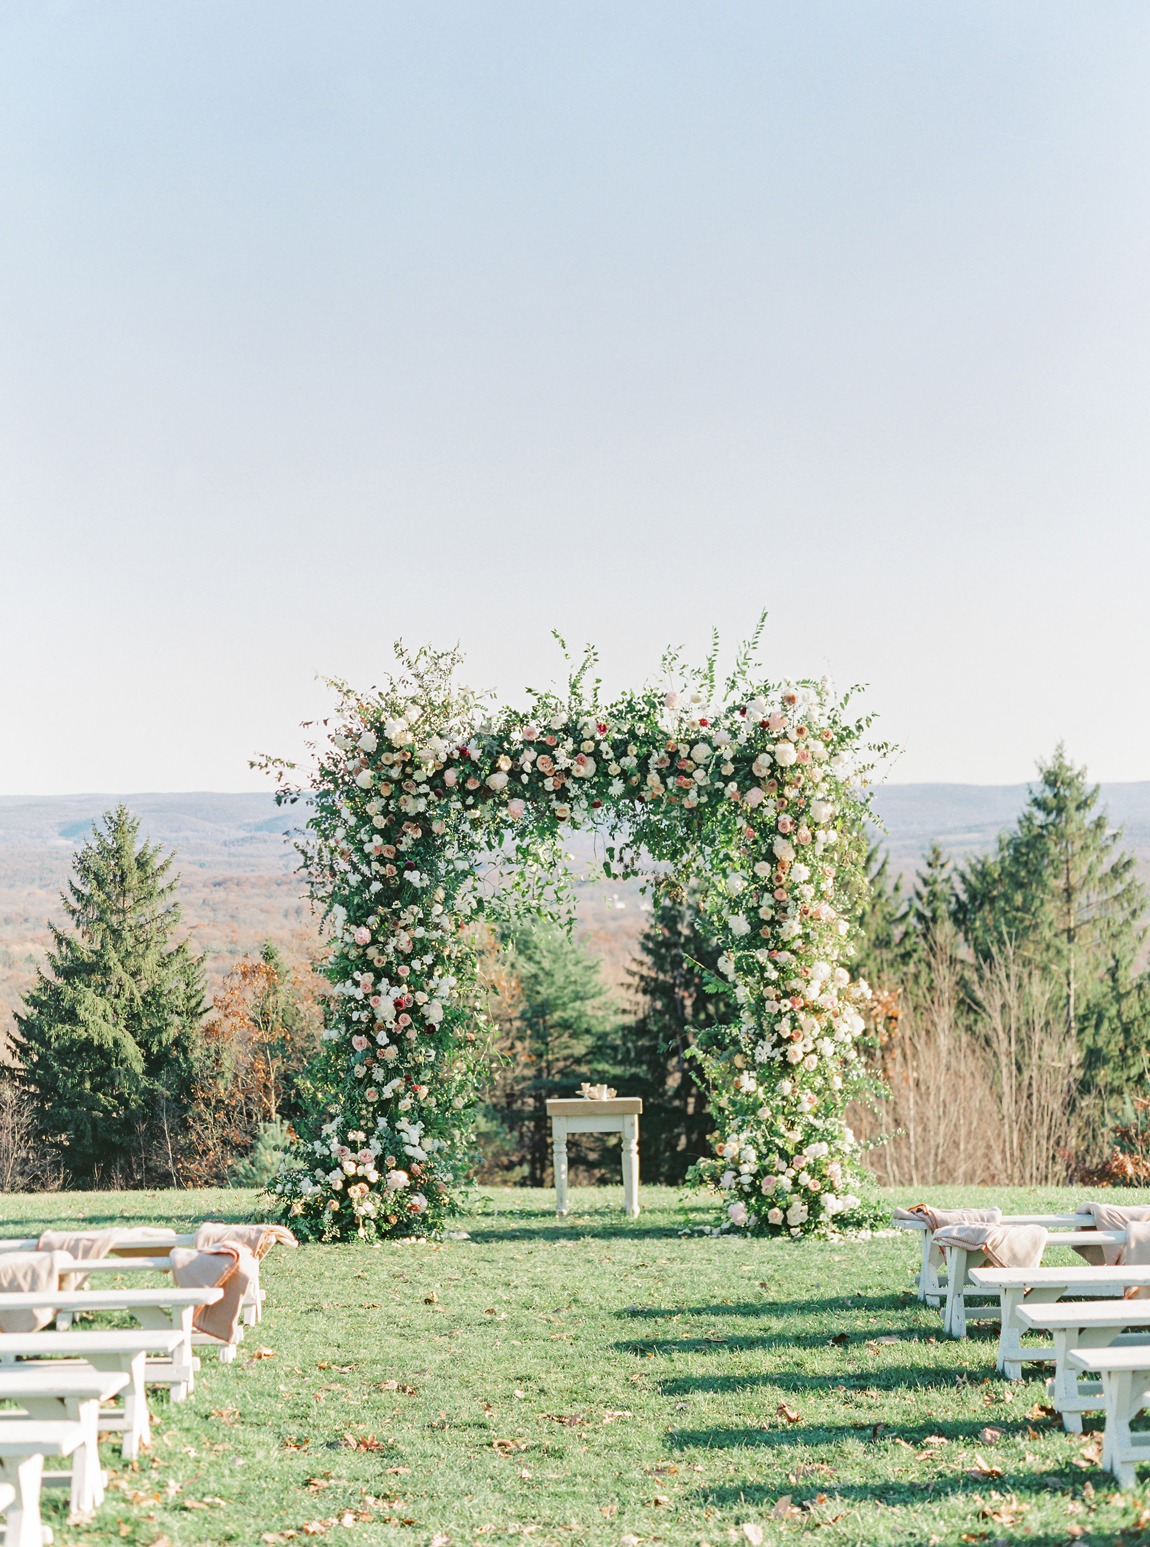 nine-foot-high floral ceremonial chuppah